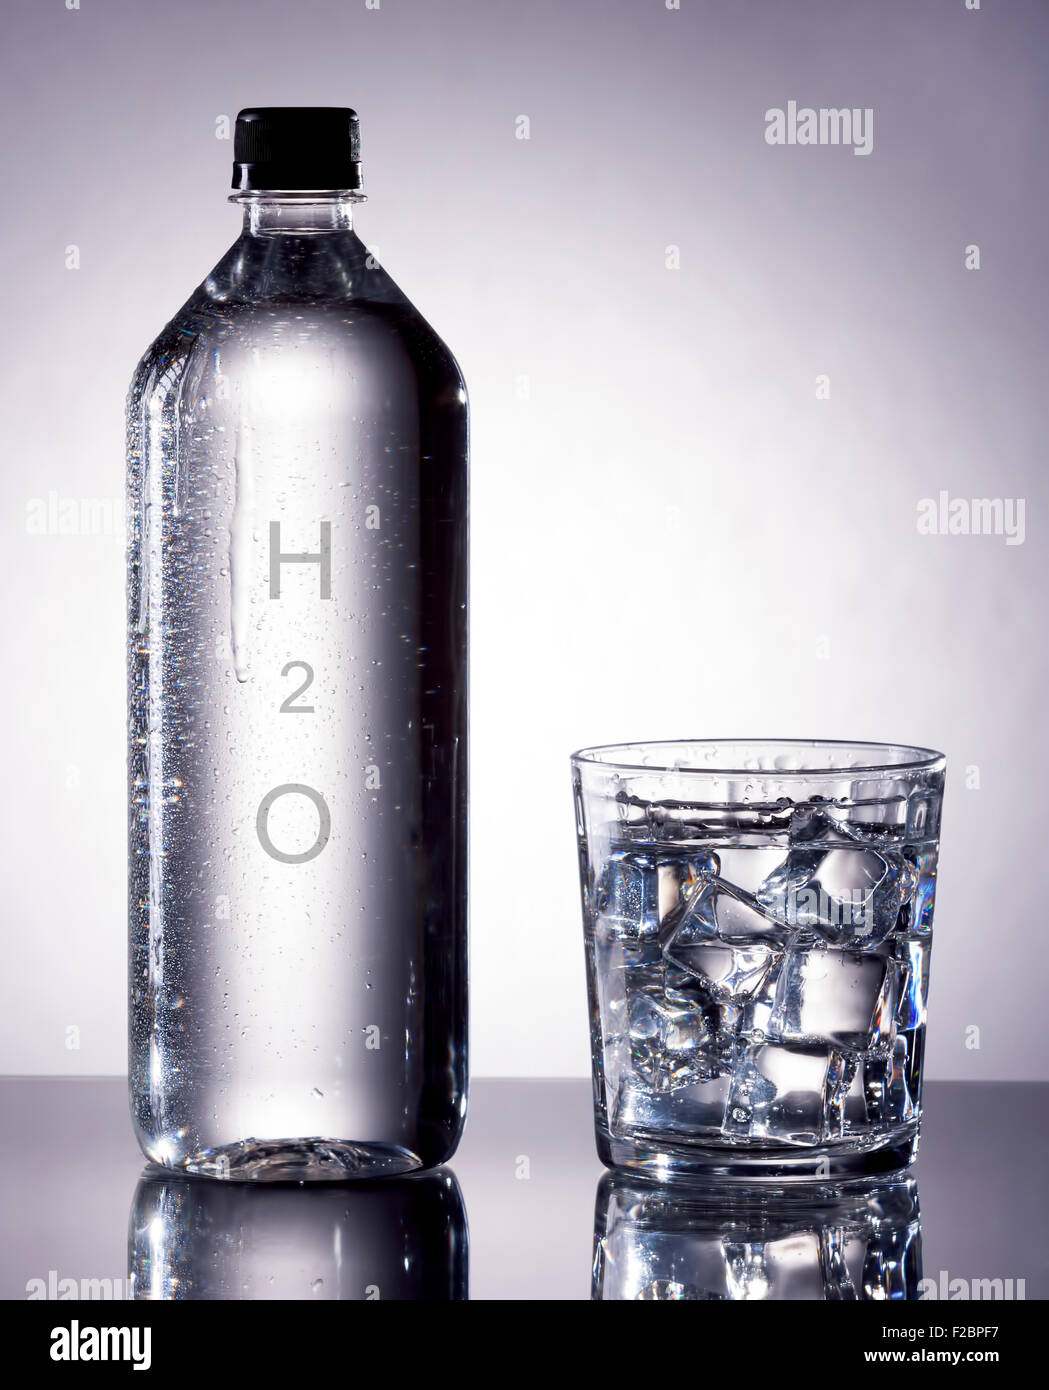 A bottle of water next to a glass filled with ice and water. - Stock Image